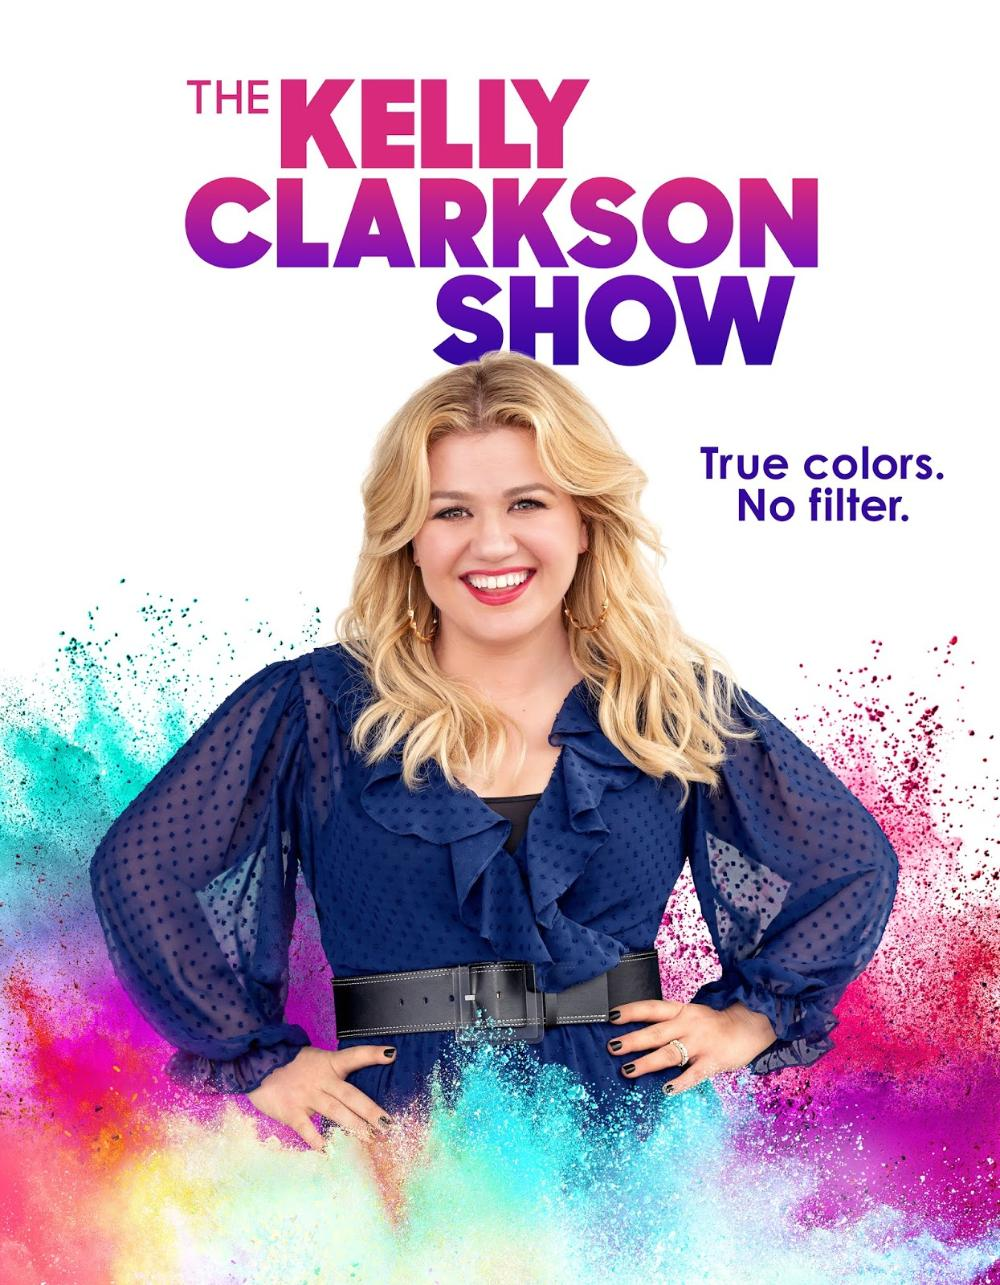 The Kelly Clarkson Show 2019 11 13 Jason Momoa WEB x264-XLF